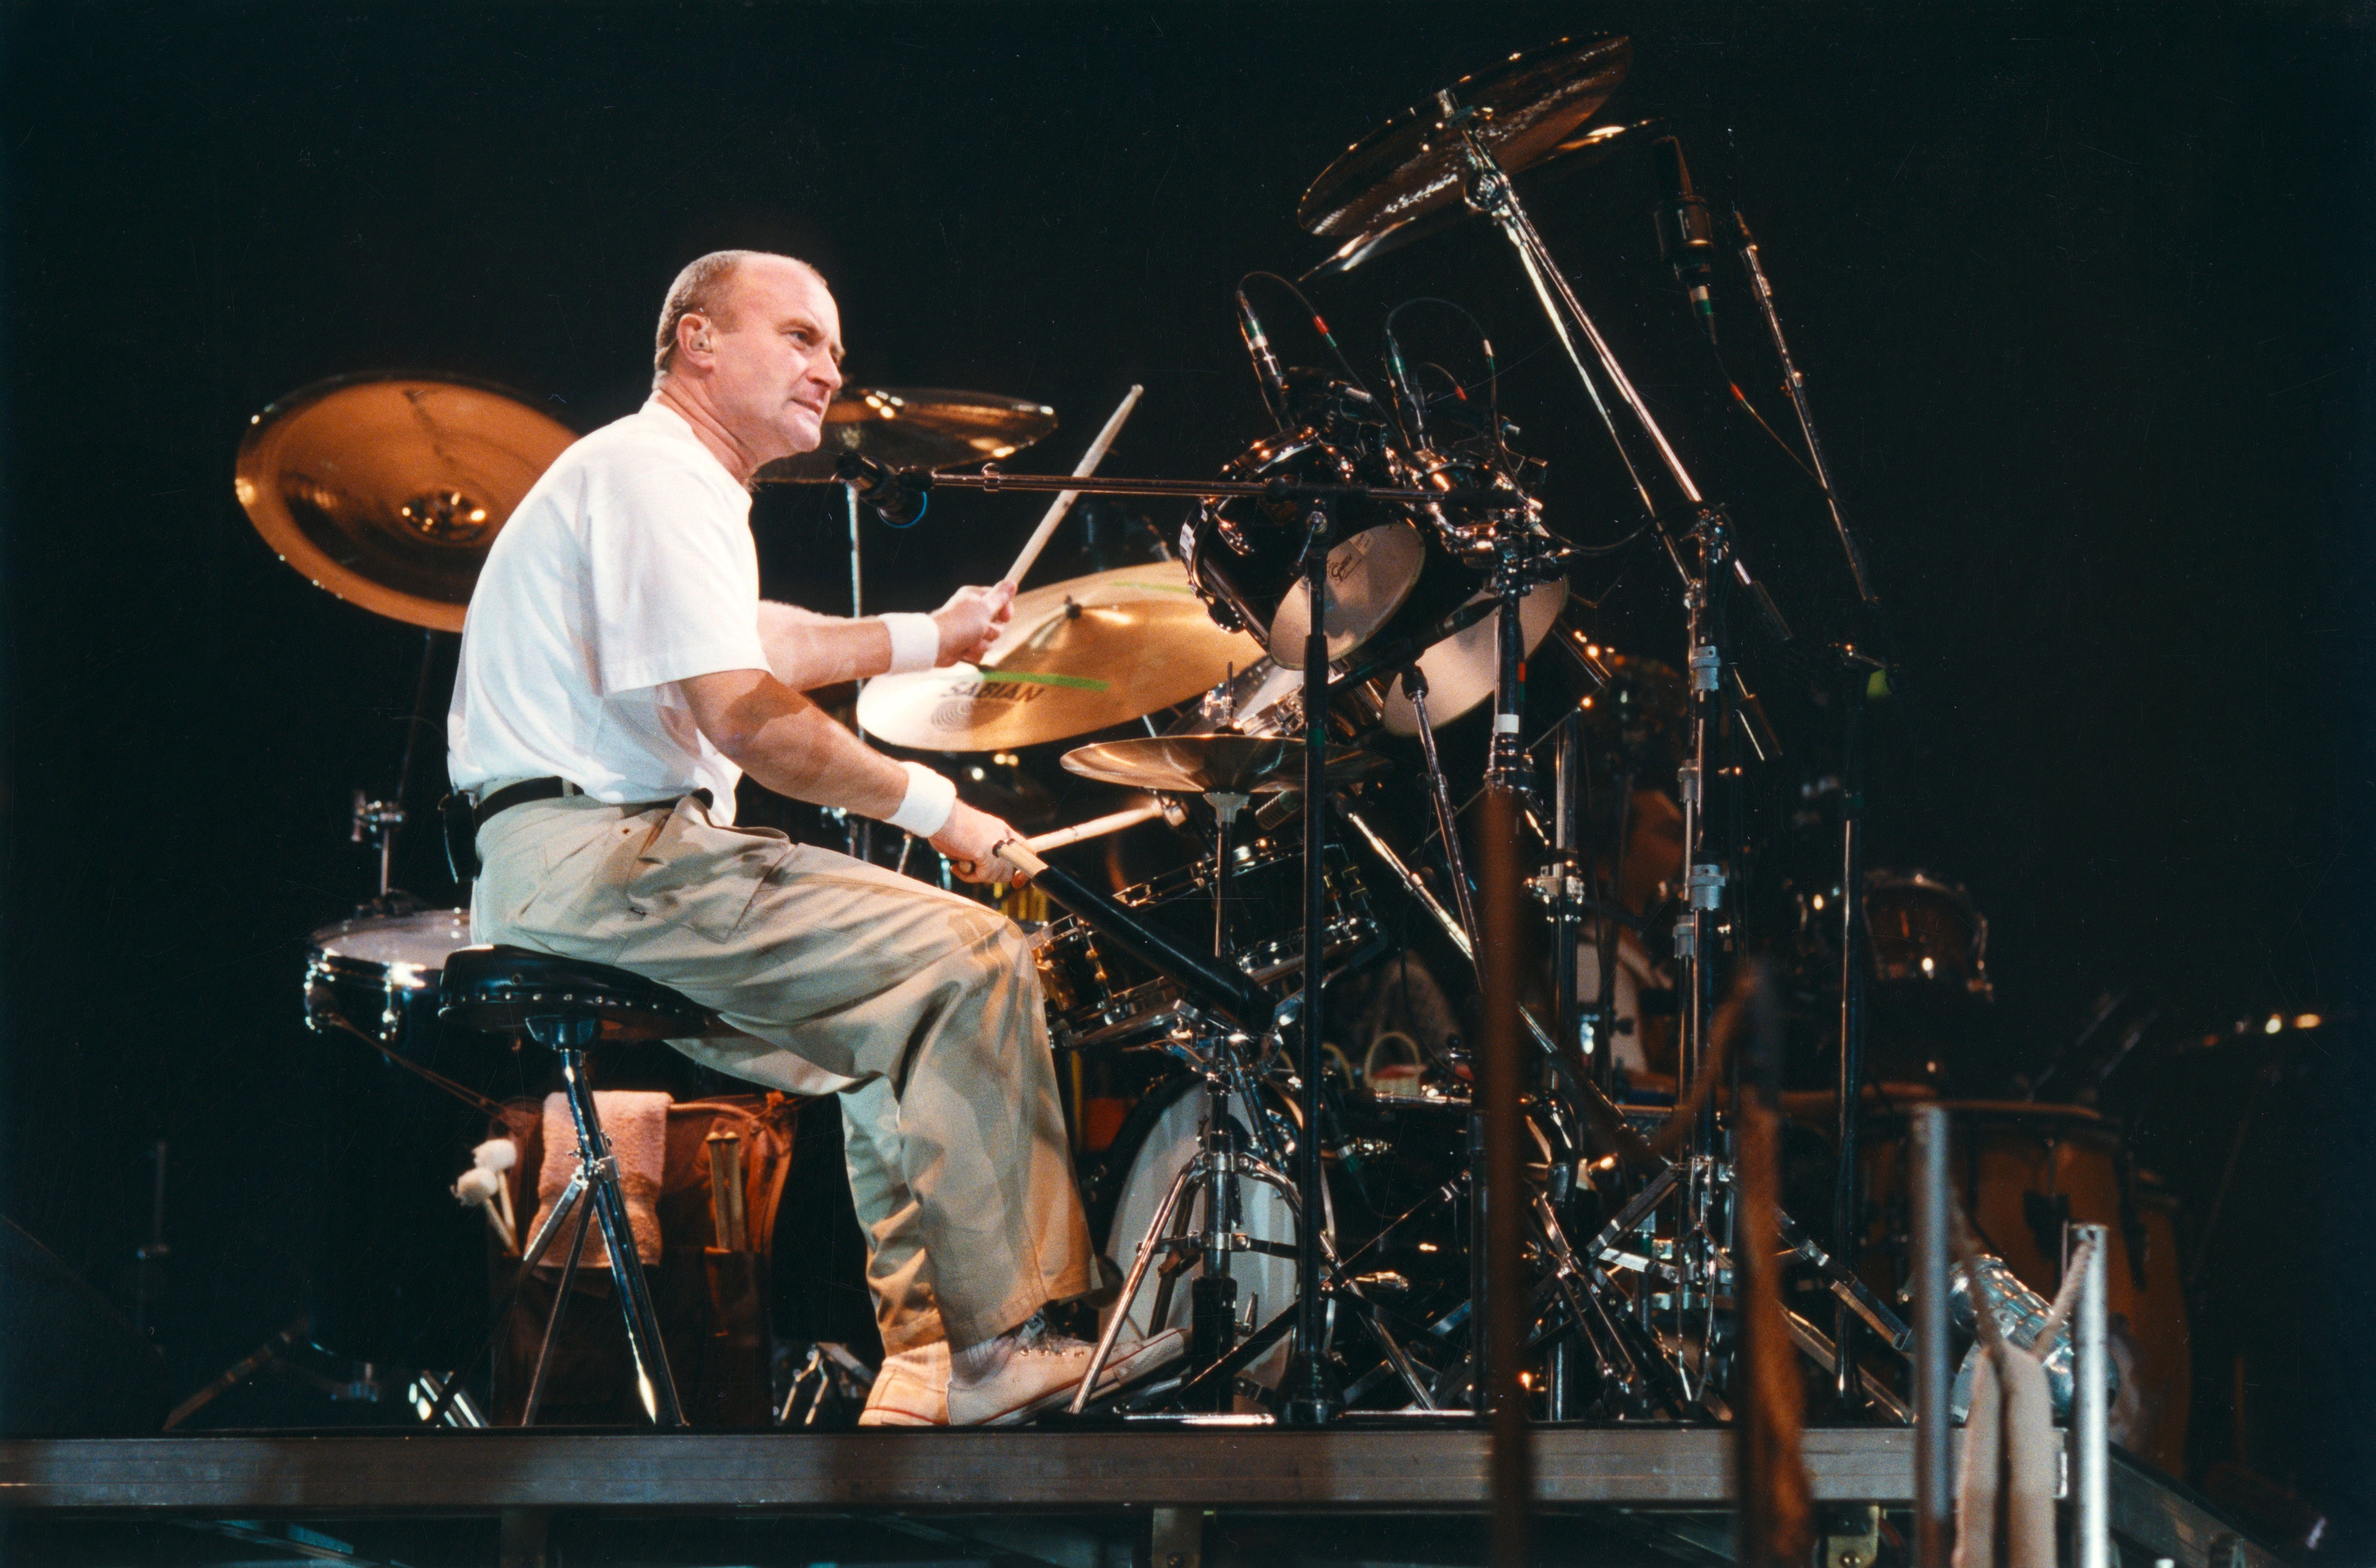 Phil Collins Wants You To See In The New Year With The Drum Solo From 'In The Air